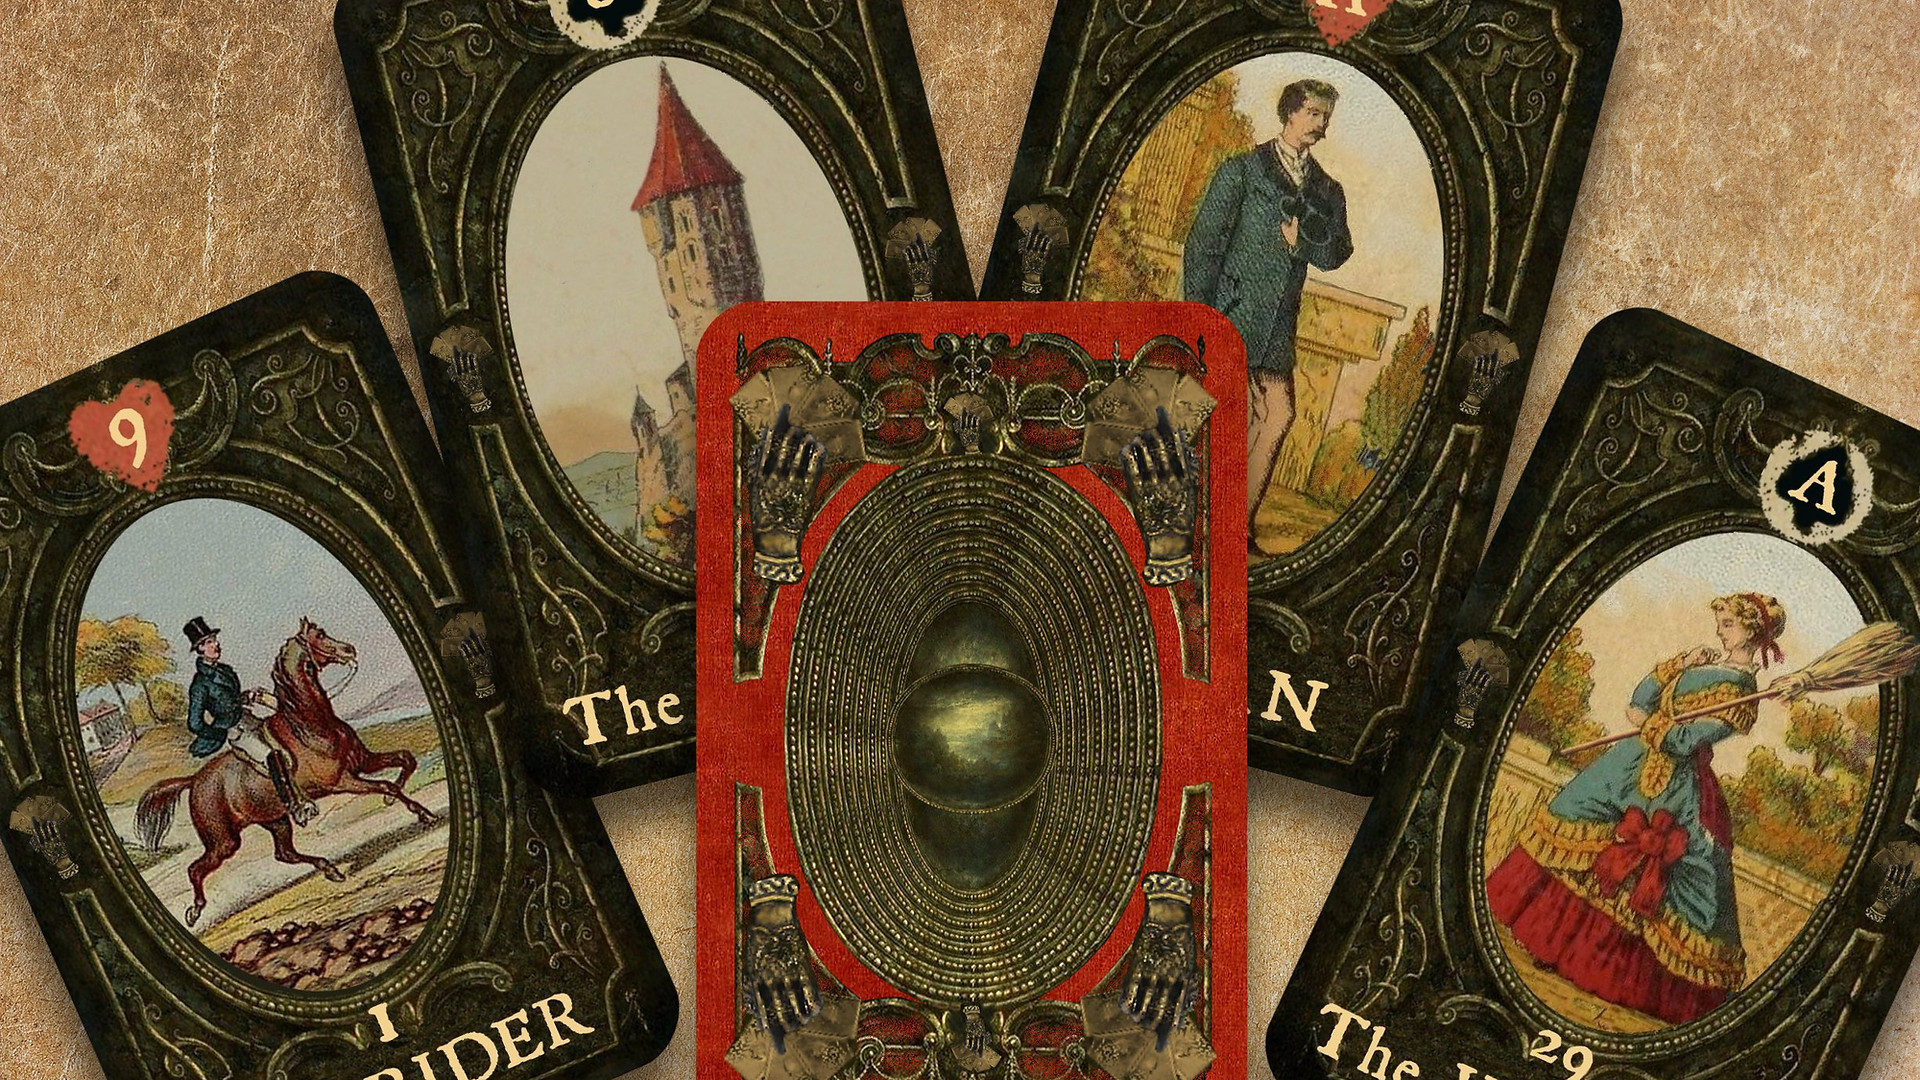 Tarot by Seven, Lenormand, Gold Hand, Le